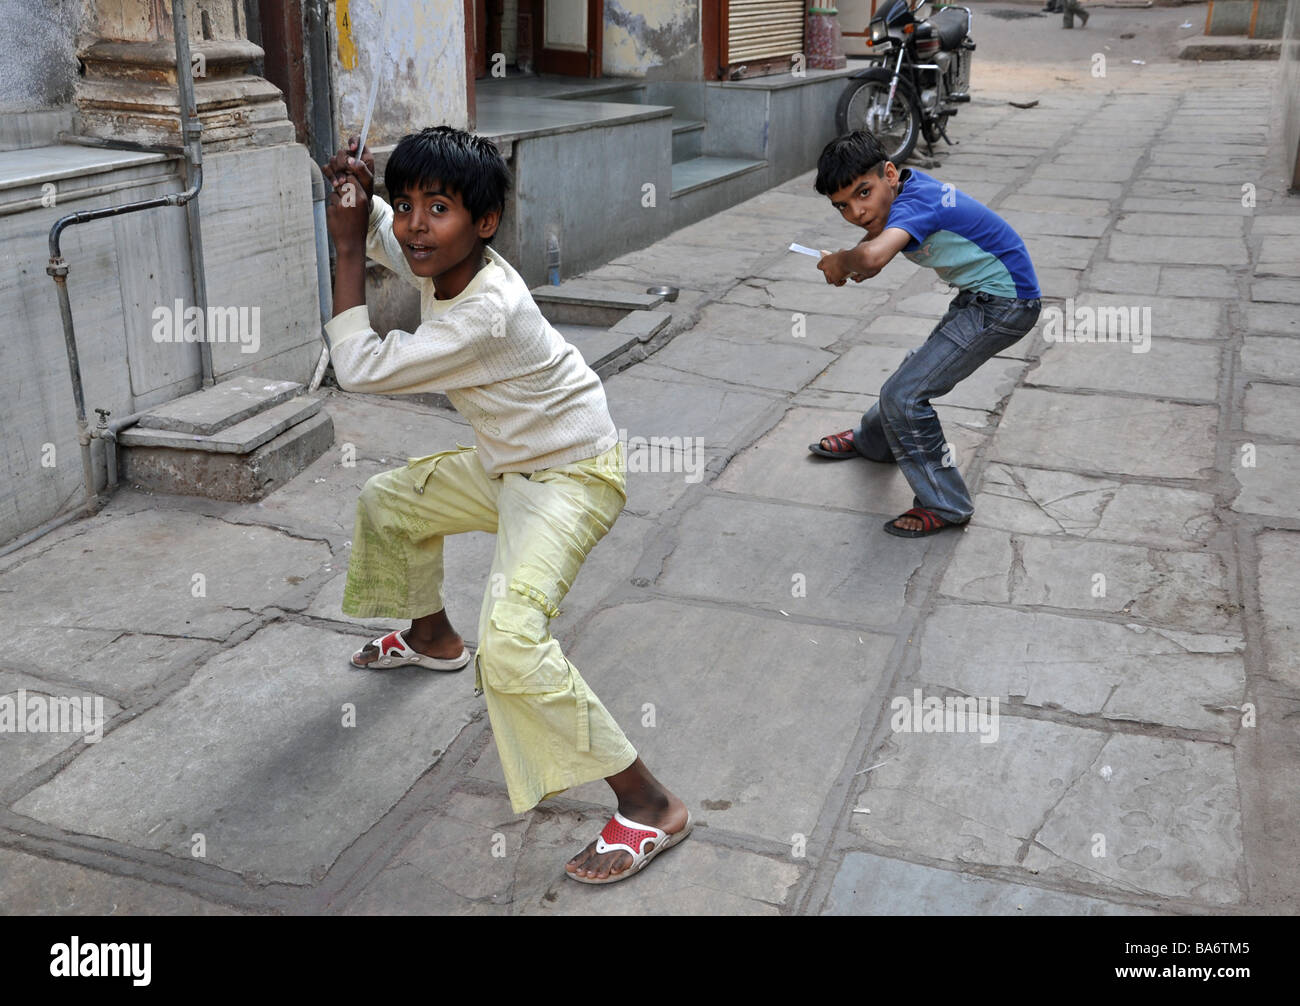 Children playing with rulers in Ahmedabad - Stock Image